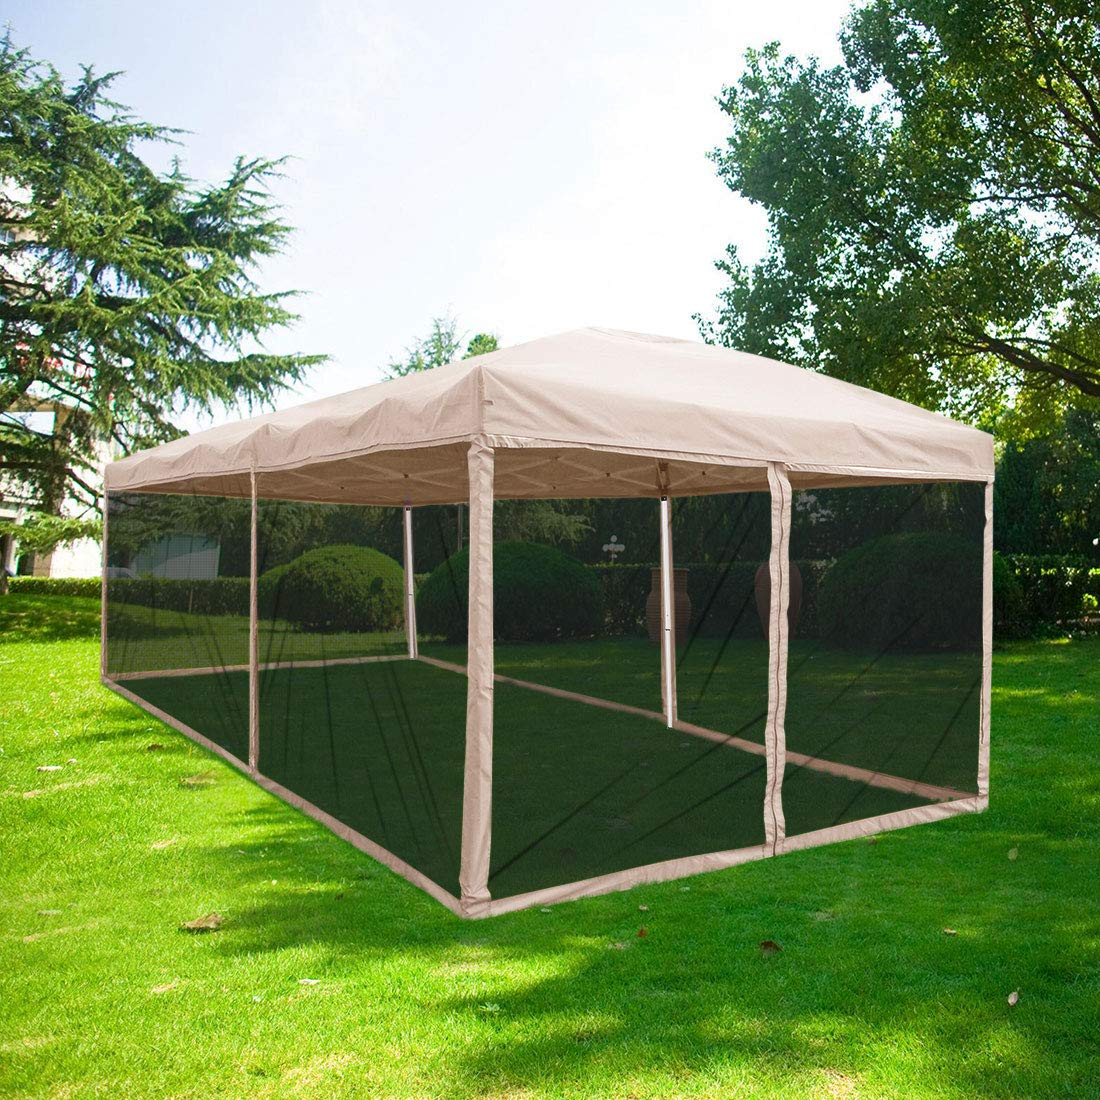 Quictent 10x20 Easy Pop up Canopy Tent Screen House with Netting Mesh Sides Walls(Tan) by Quictent